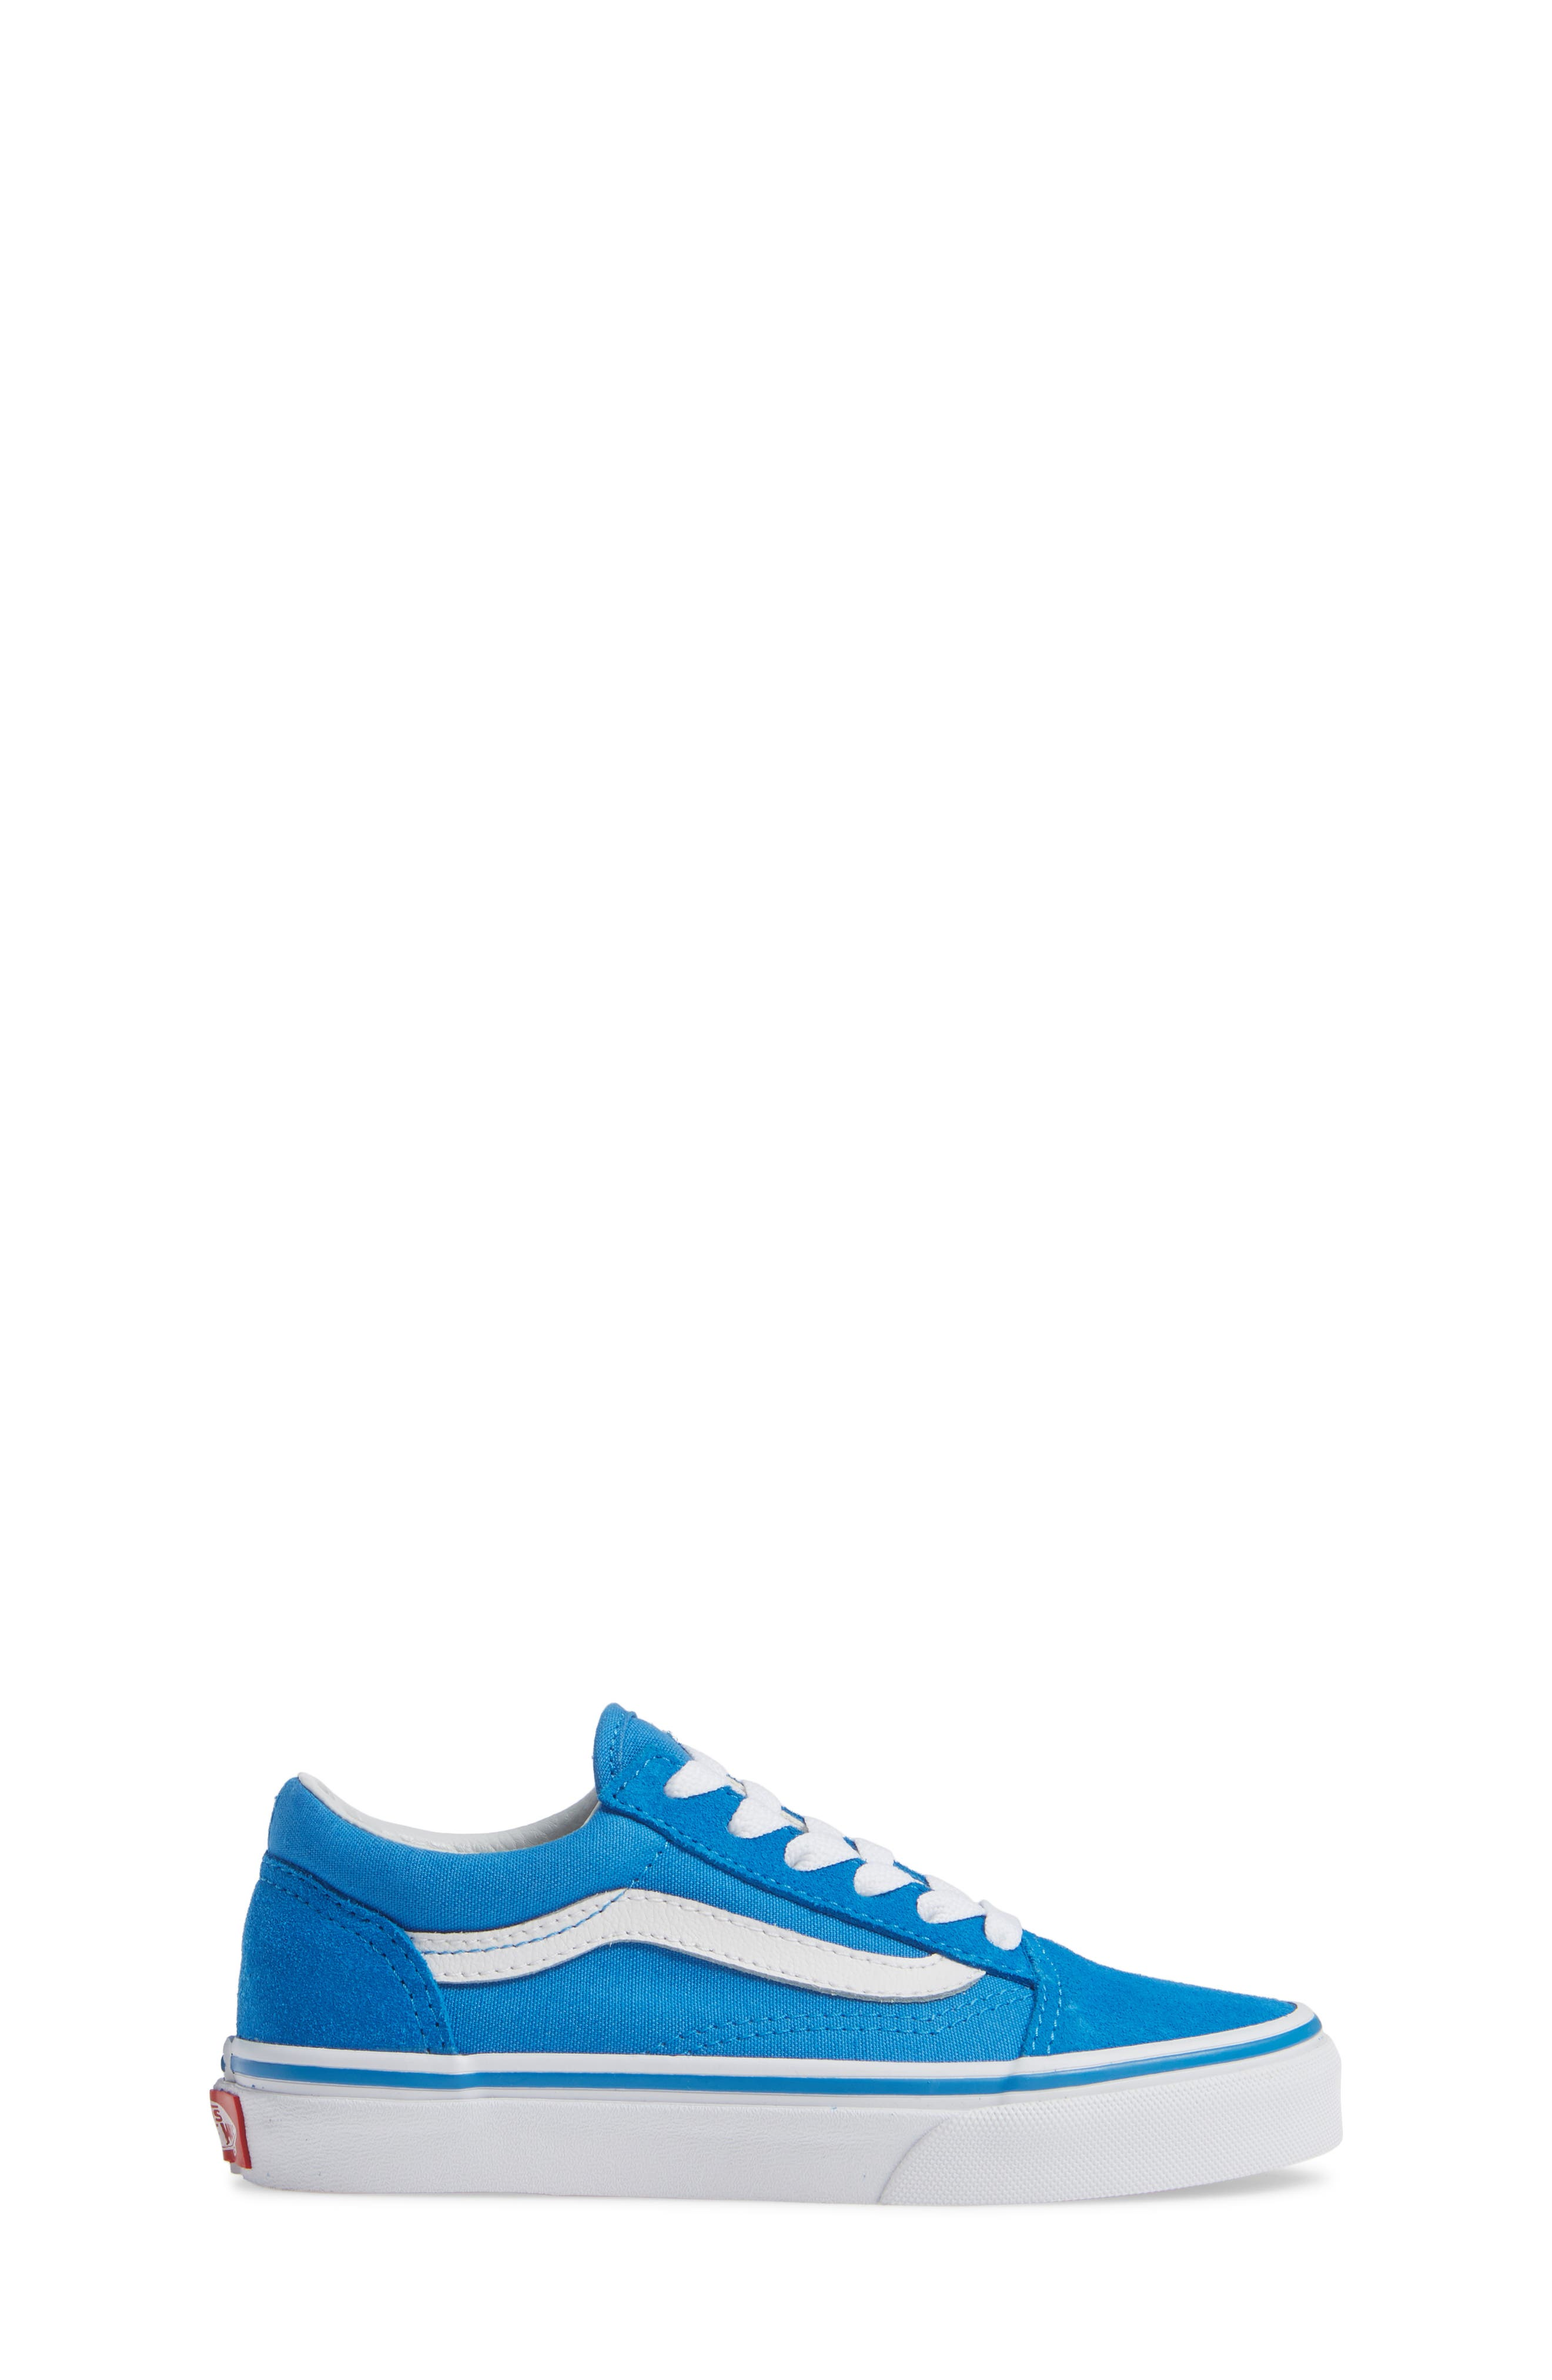 Old Skool Sneaker,                             Alternate thumbnail 3, color,                             INDIGO BUNTING/ TRUE WHITE